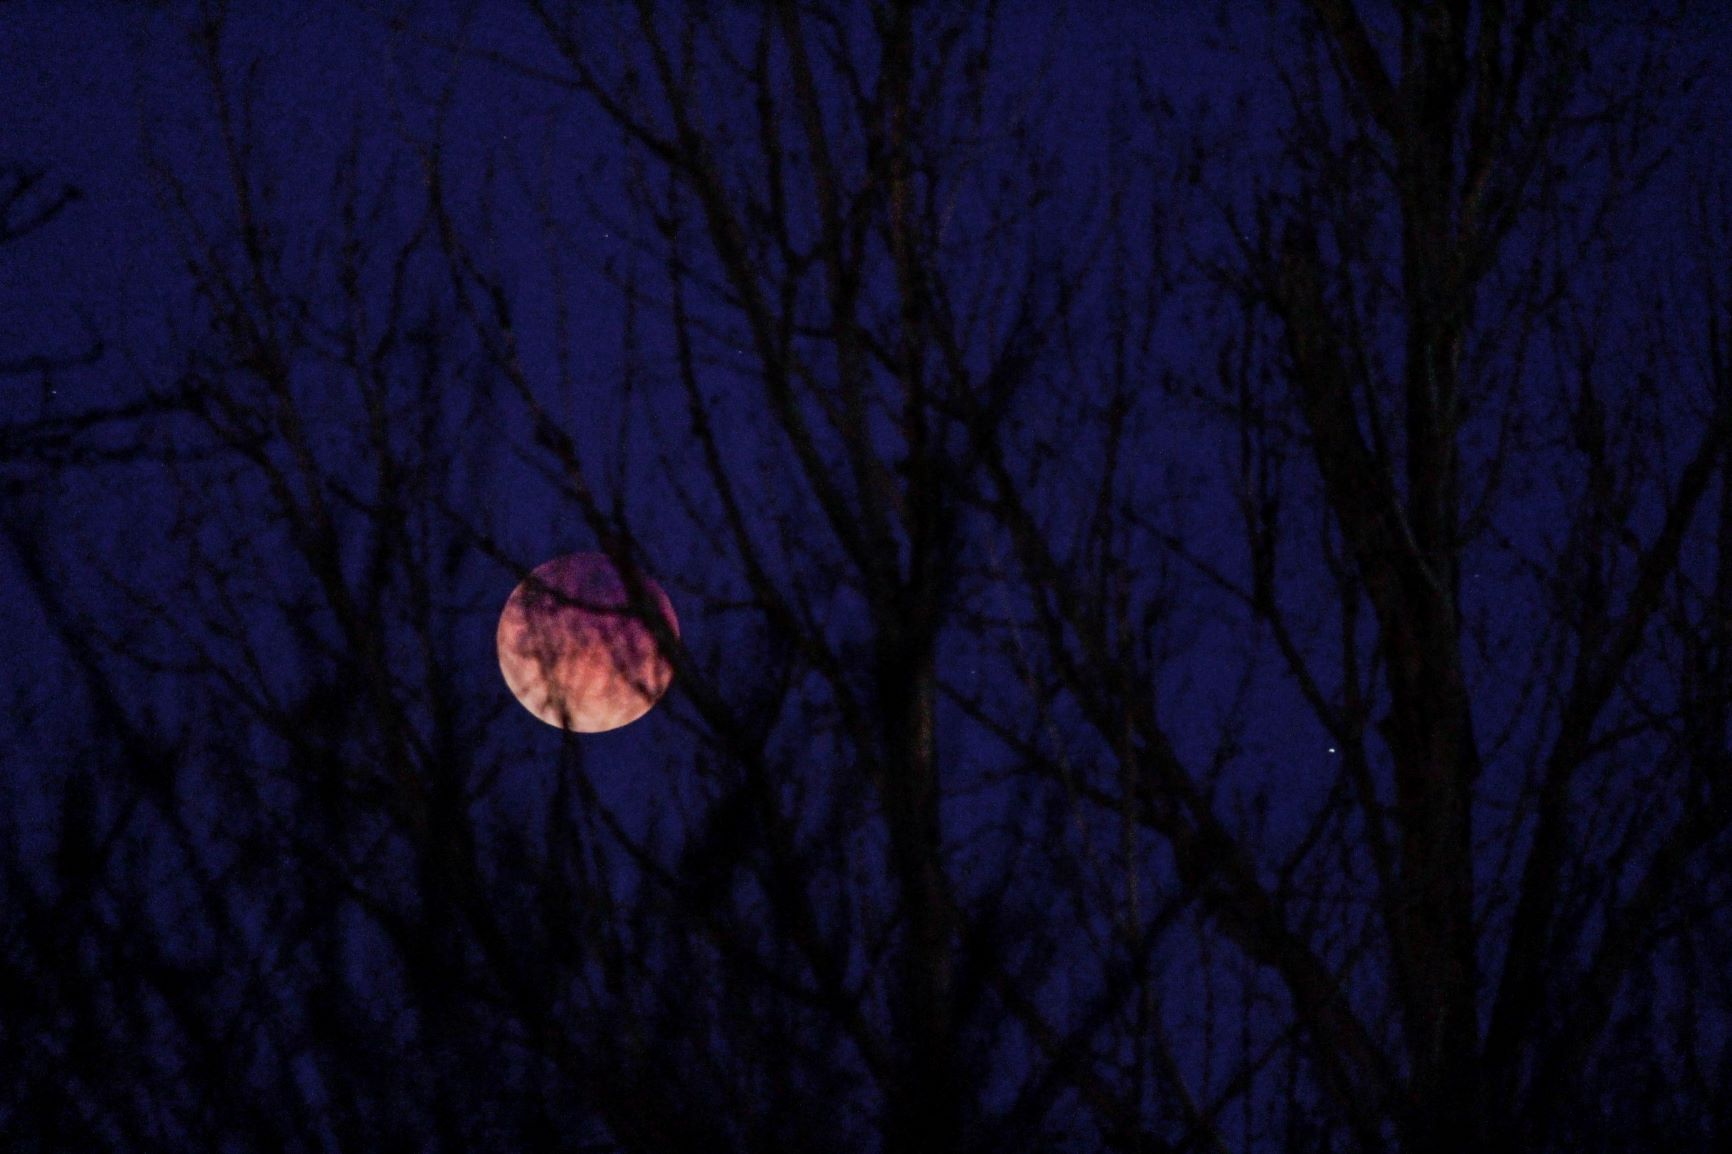 The moon showing in the night sky through some bare, dark tree branches.